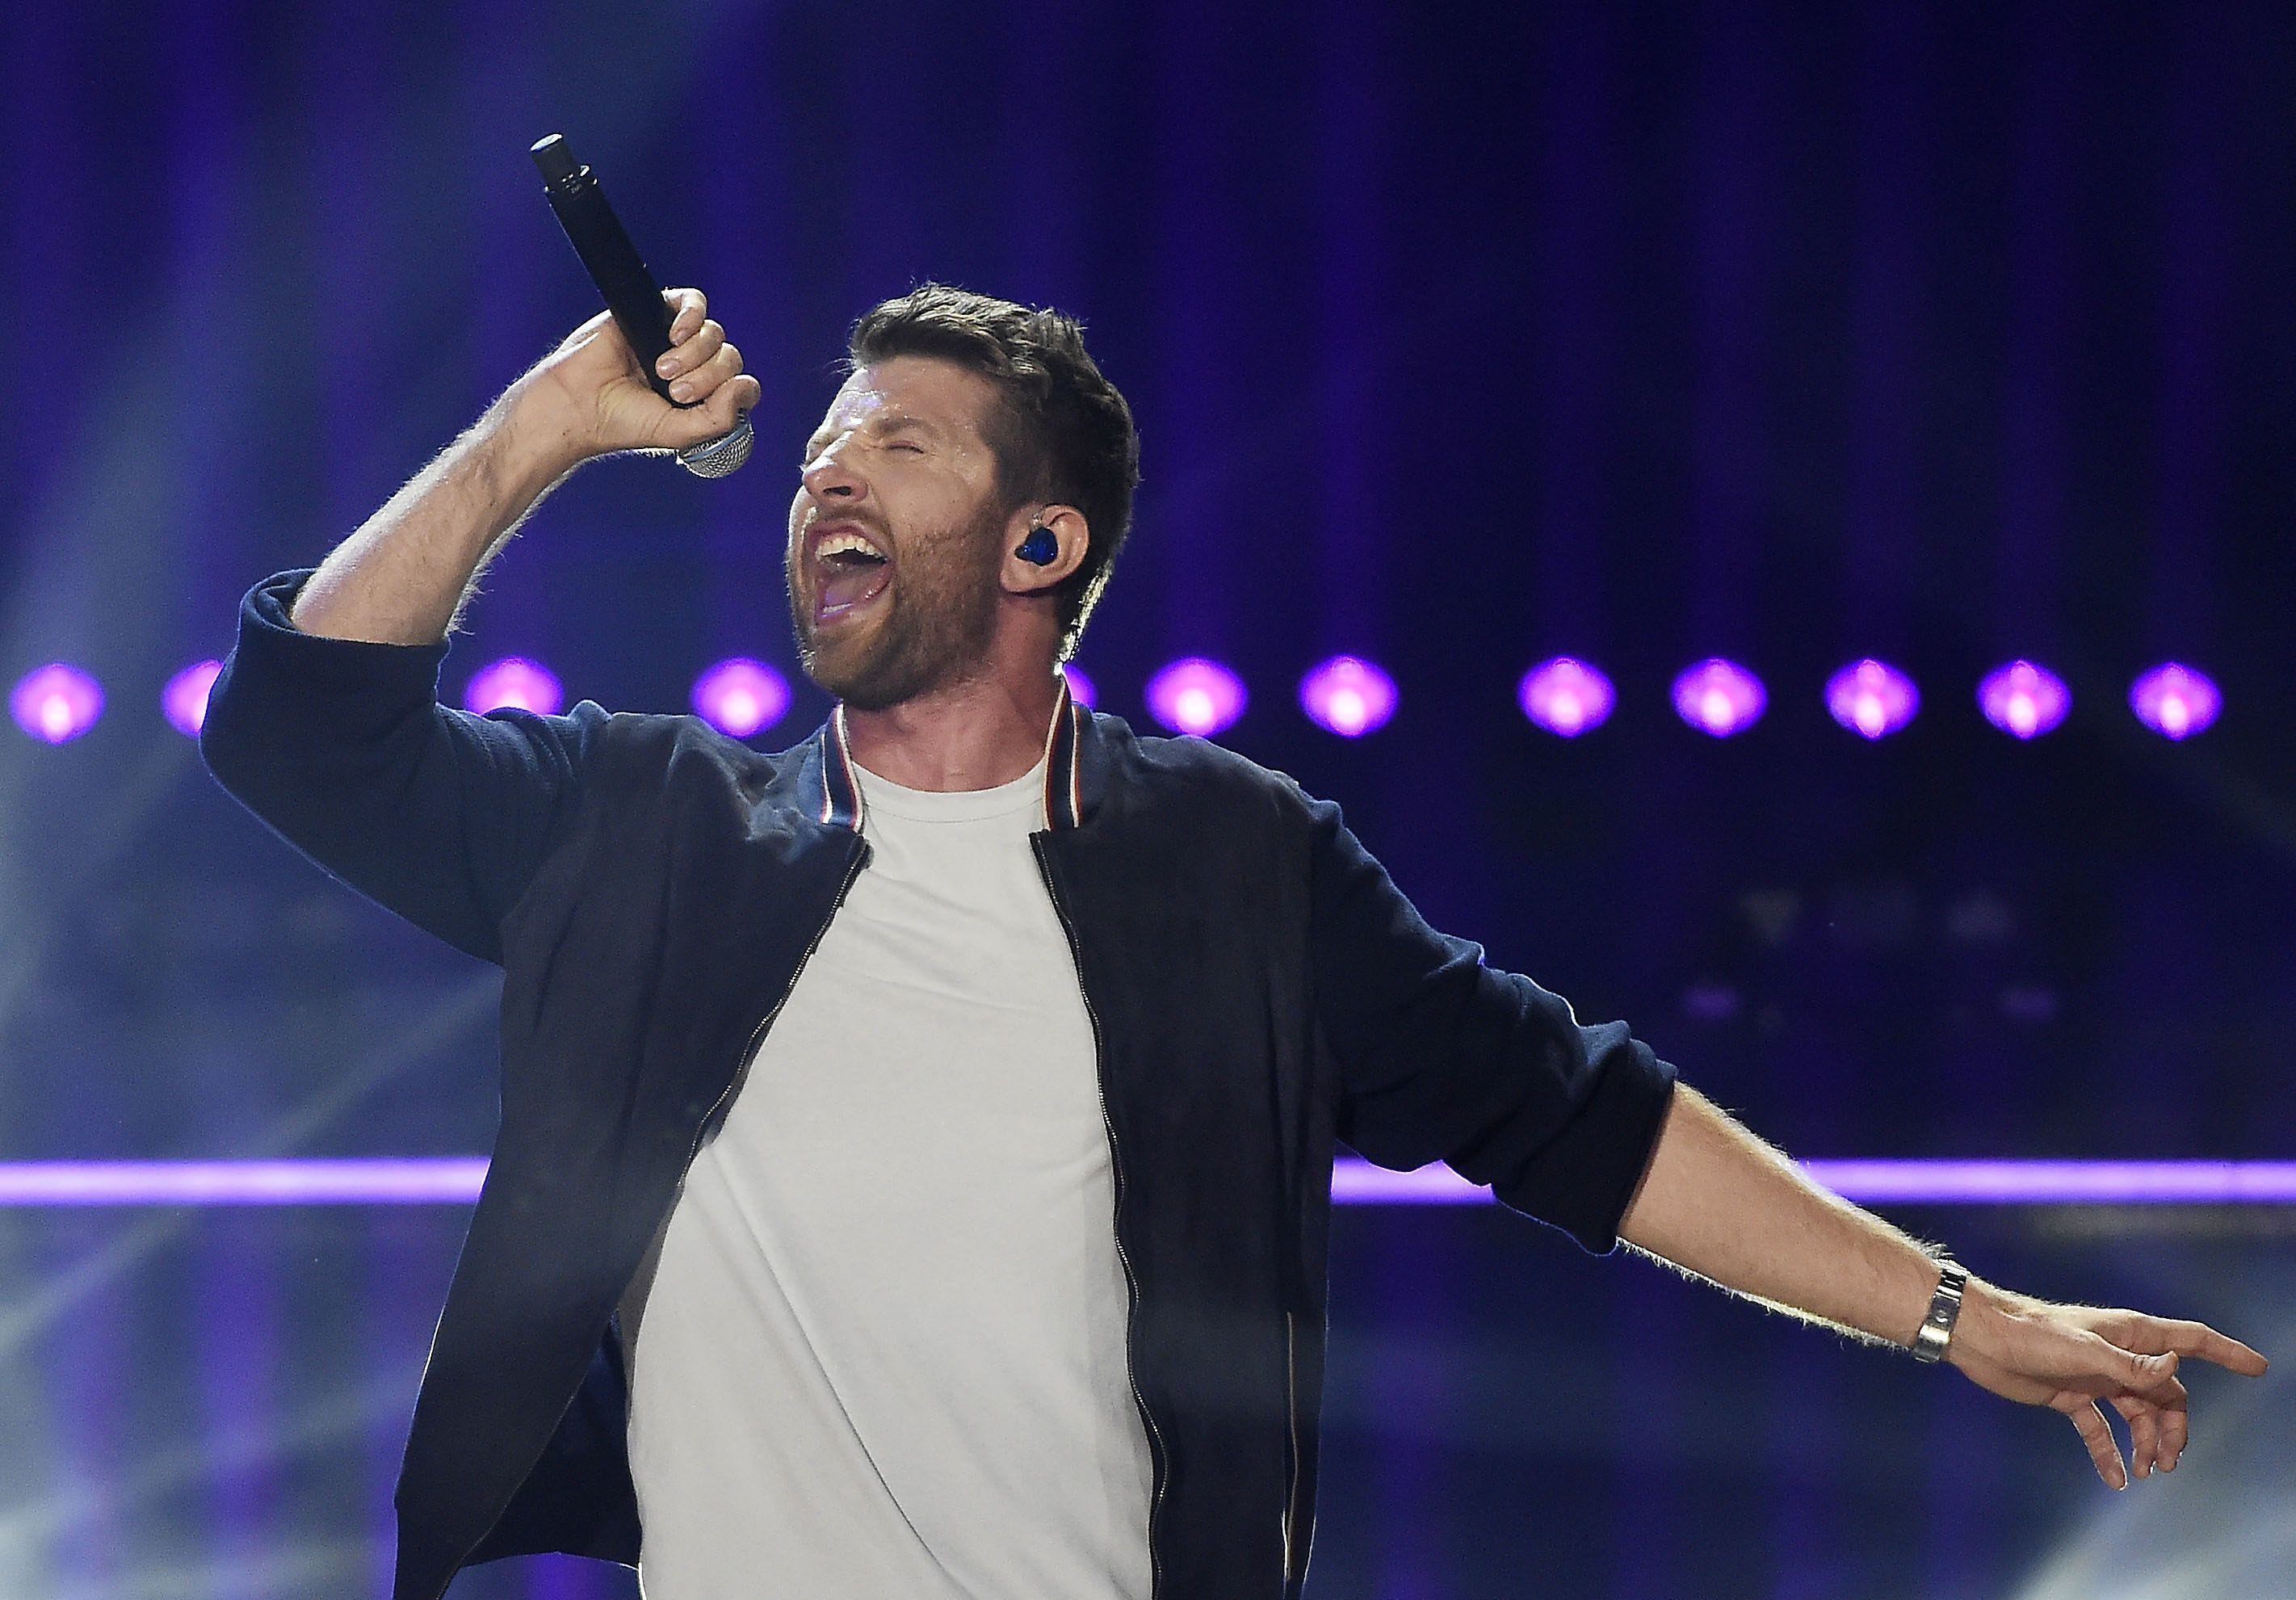 Taste of Country organizers have found success hosting the event at Cooley Law School Stadium, home of baseball's Lansing Lugnuts. Brett Eldredge headlined the 2018 festival.